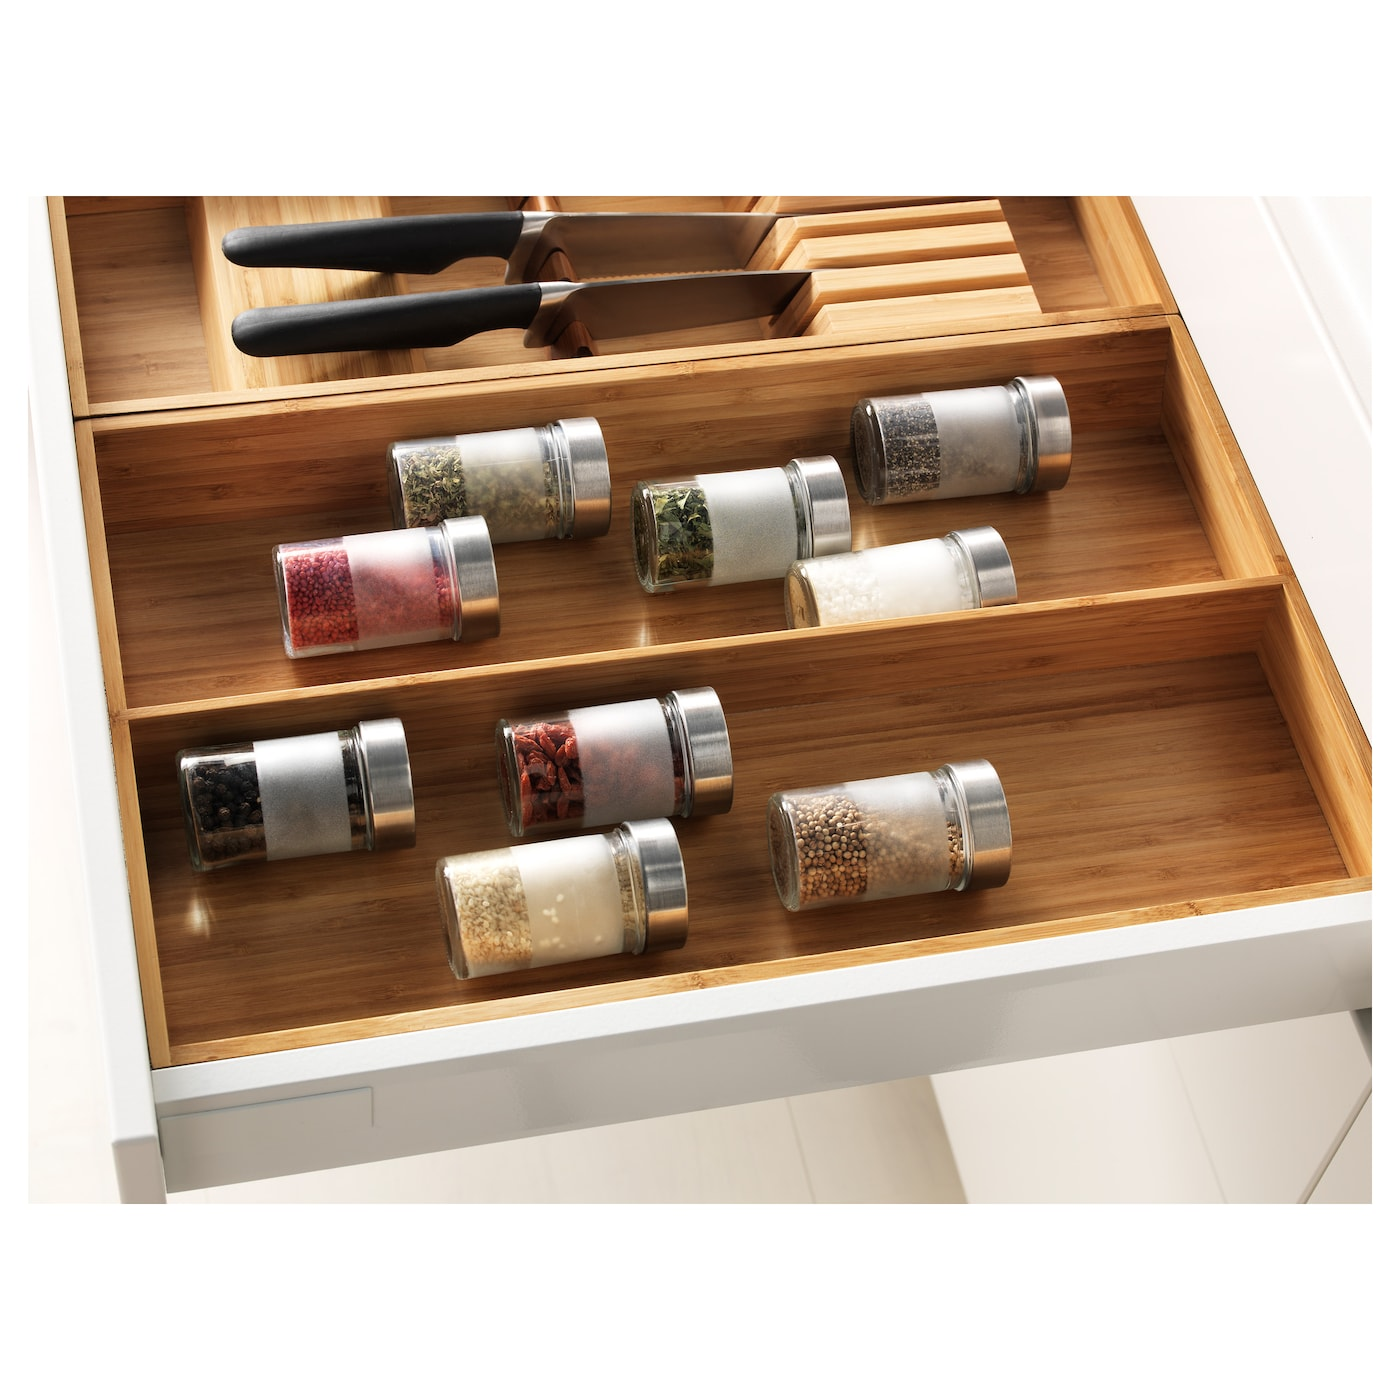 IKEA VARIERA utensil tray Helps you organize things in the drawer.